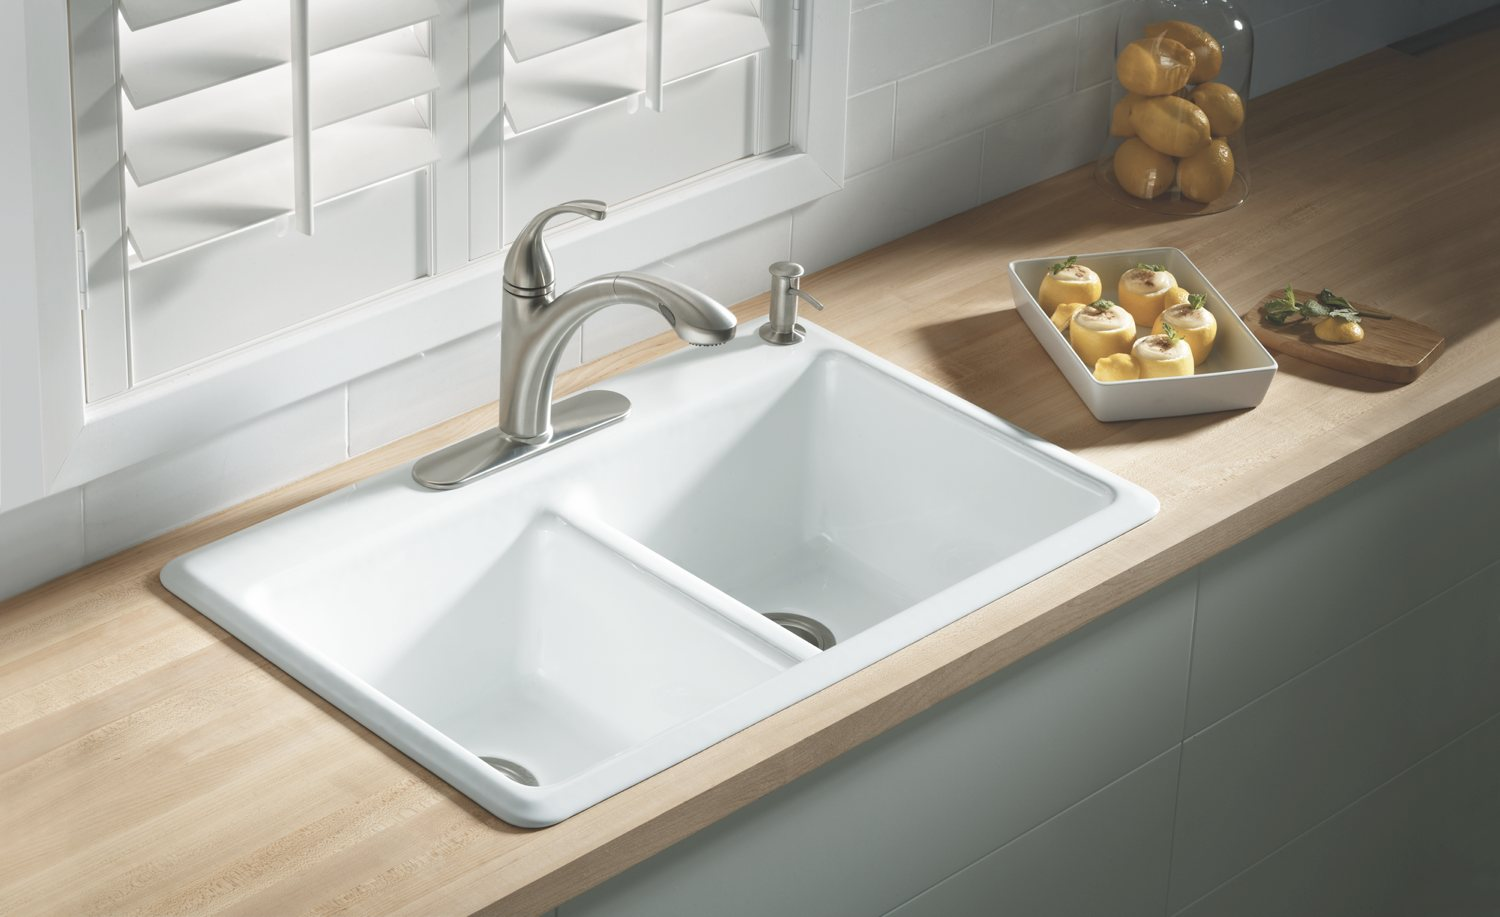 Tips for choosing a kitchen sink tolet insider - Cast iron sink weight ...